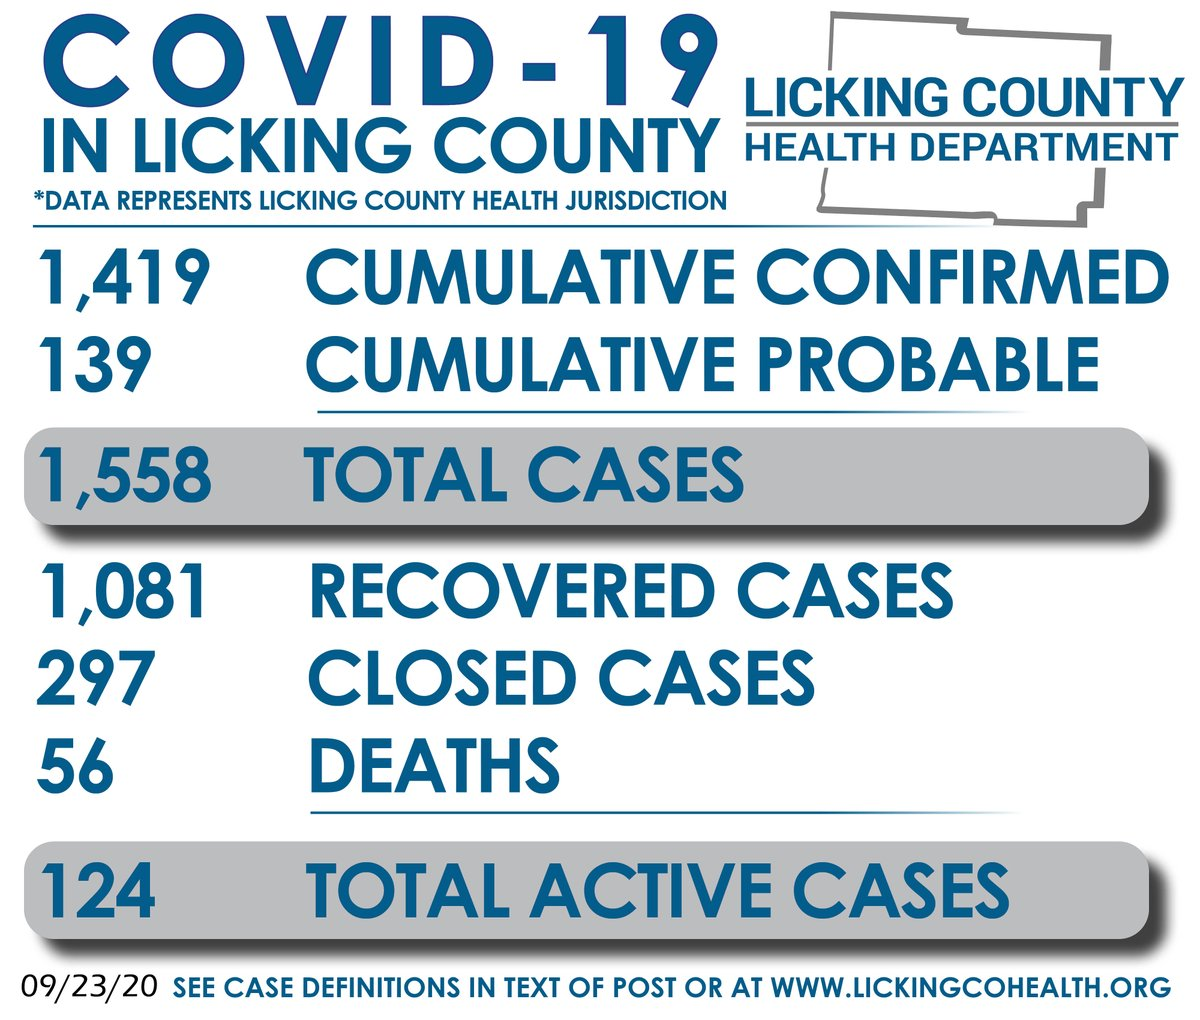 Today, LCHD is reporting 1,419 cumulative confirmed COVID-19 cases in the Licking County Health Jurisdiction. In addition, there are 139 cumulative probable cases, 1,081 recovered cases, 297 closed cases, & 56 COVID deaths. There are 124 total active cases today. Yesterday: 130.